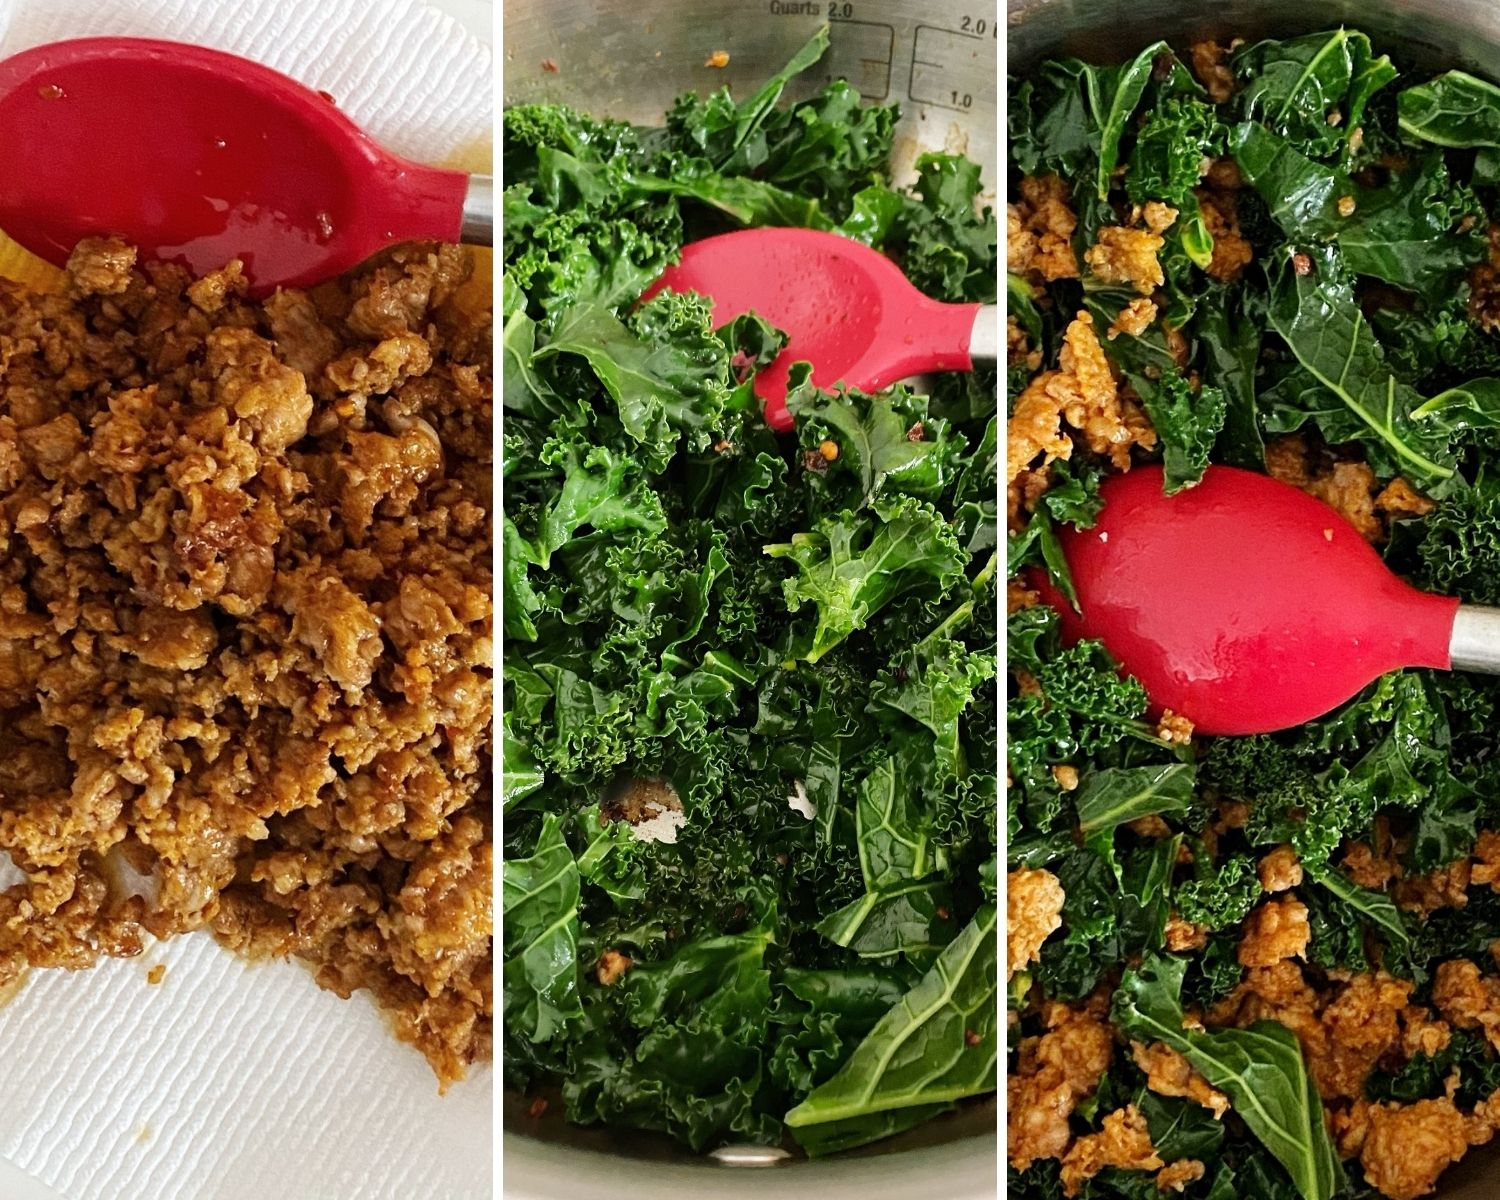 process shots of browned sausage, kale sauteing in pan, and kale and sausage mixed together